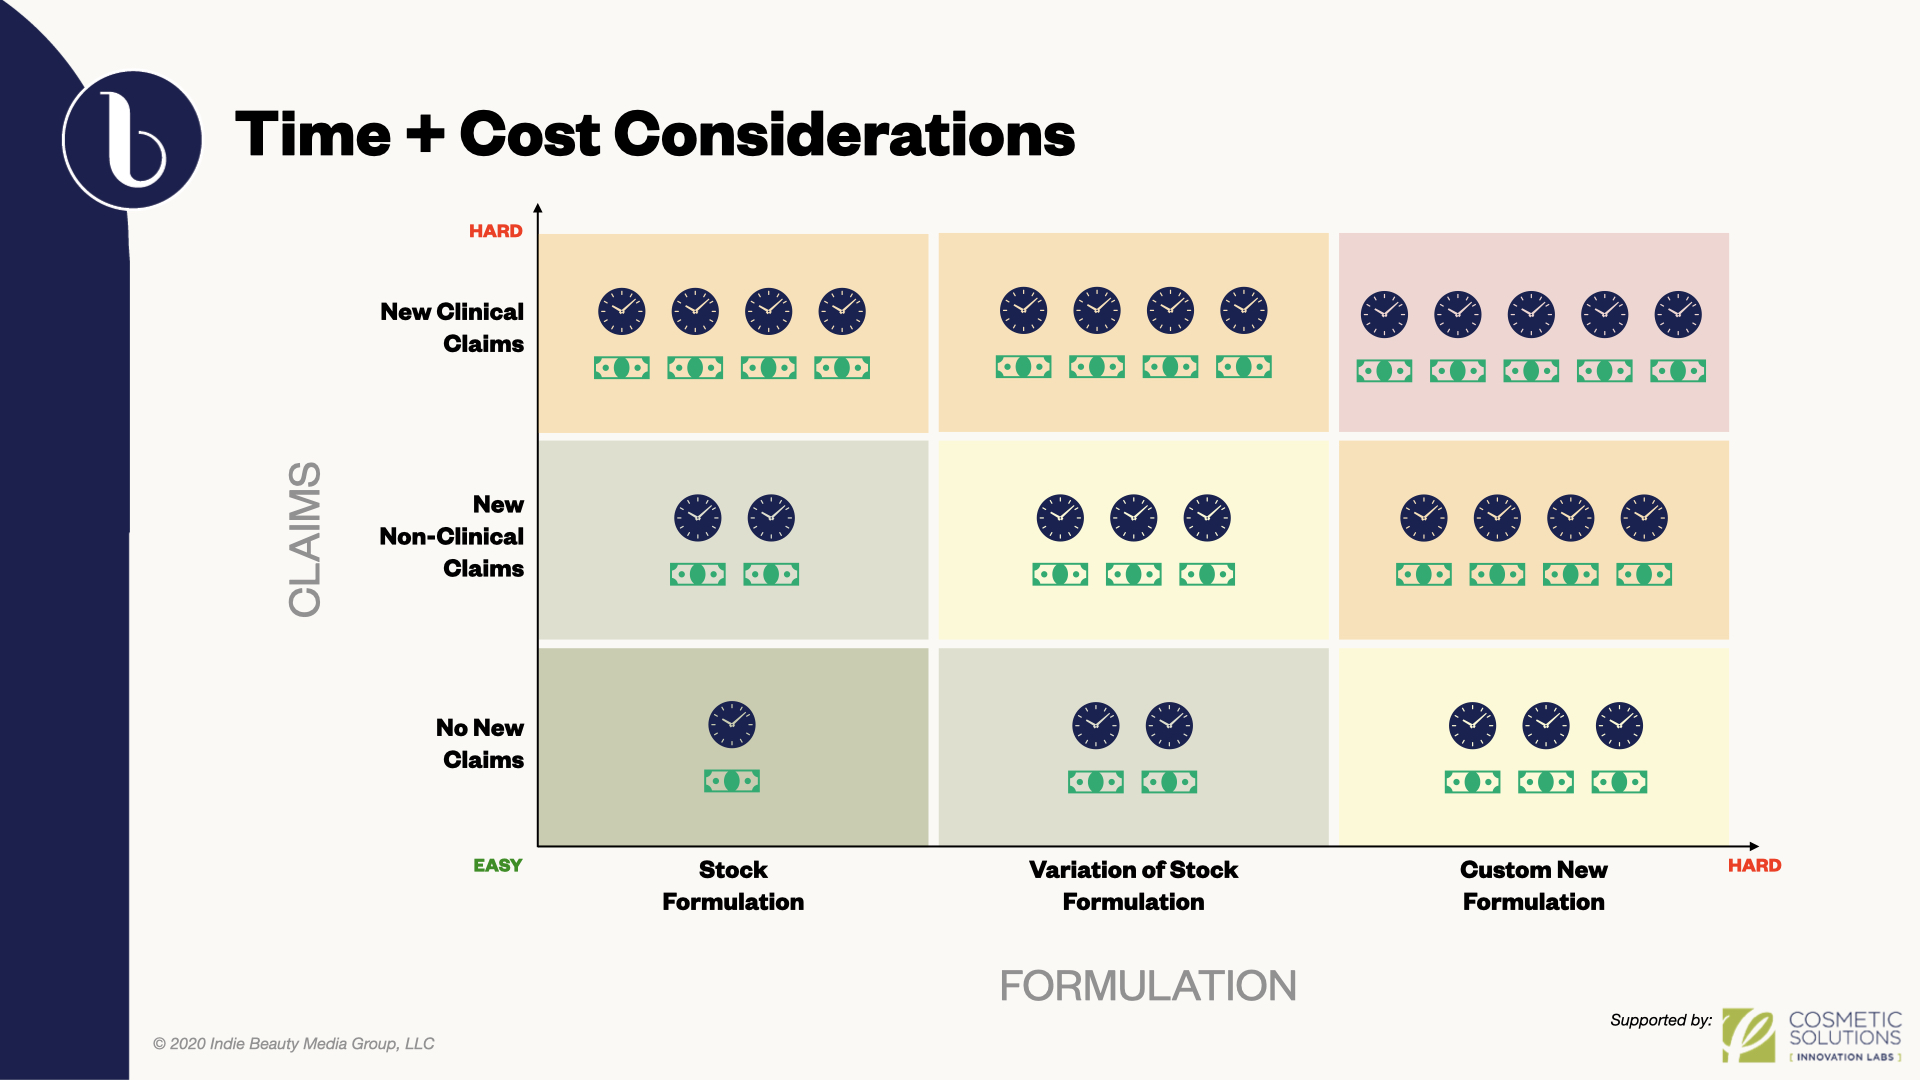 More complex beauty products require more time and more money to develop, which raises cost of goods and the price point at which the product can be sold in the market.